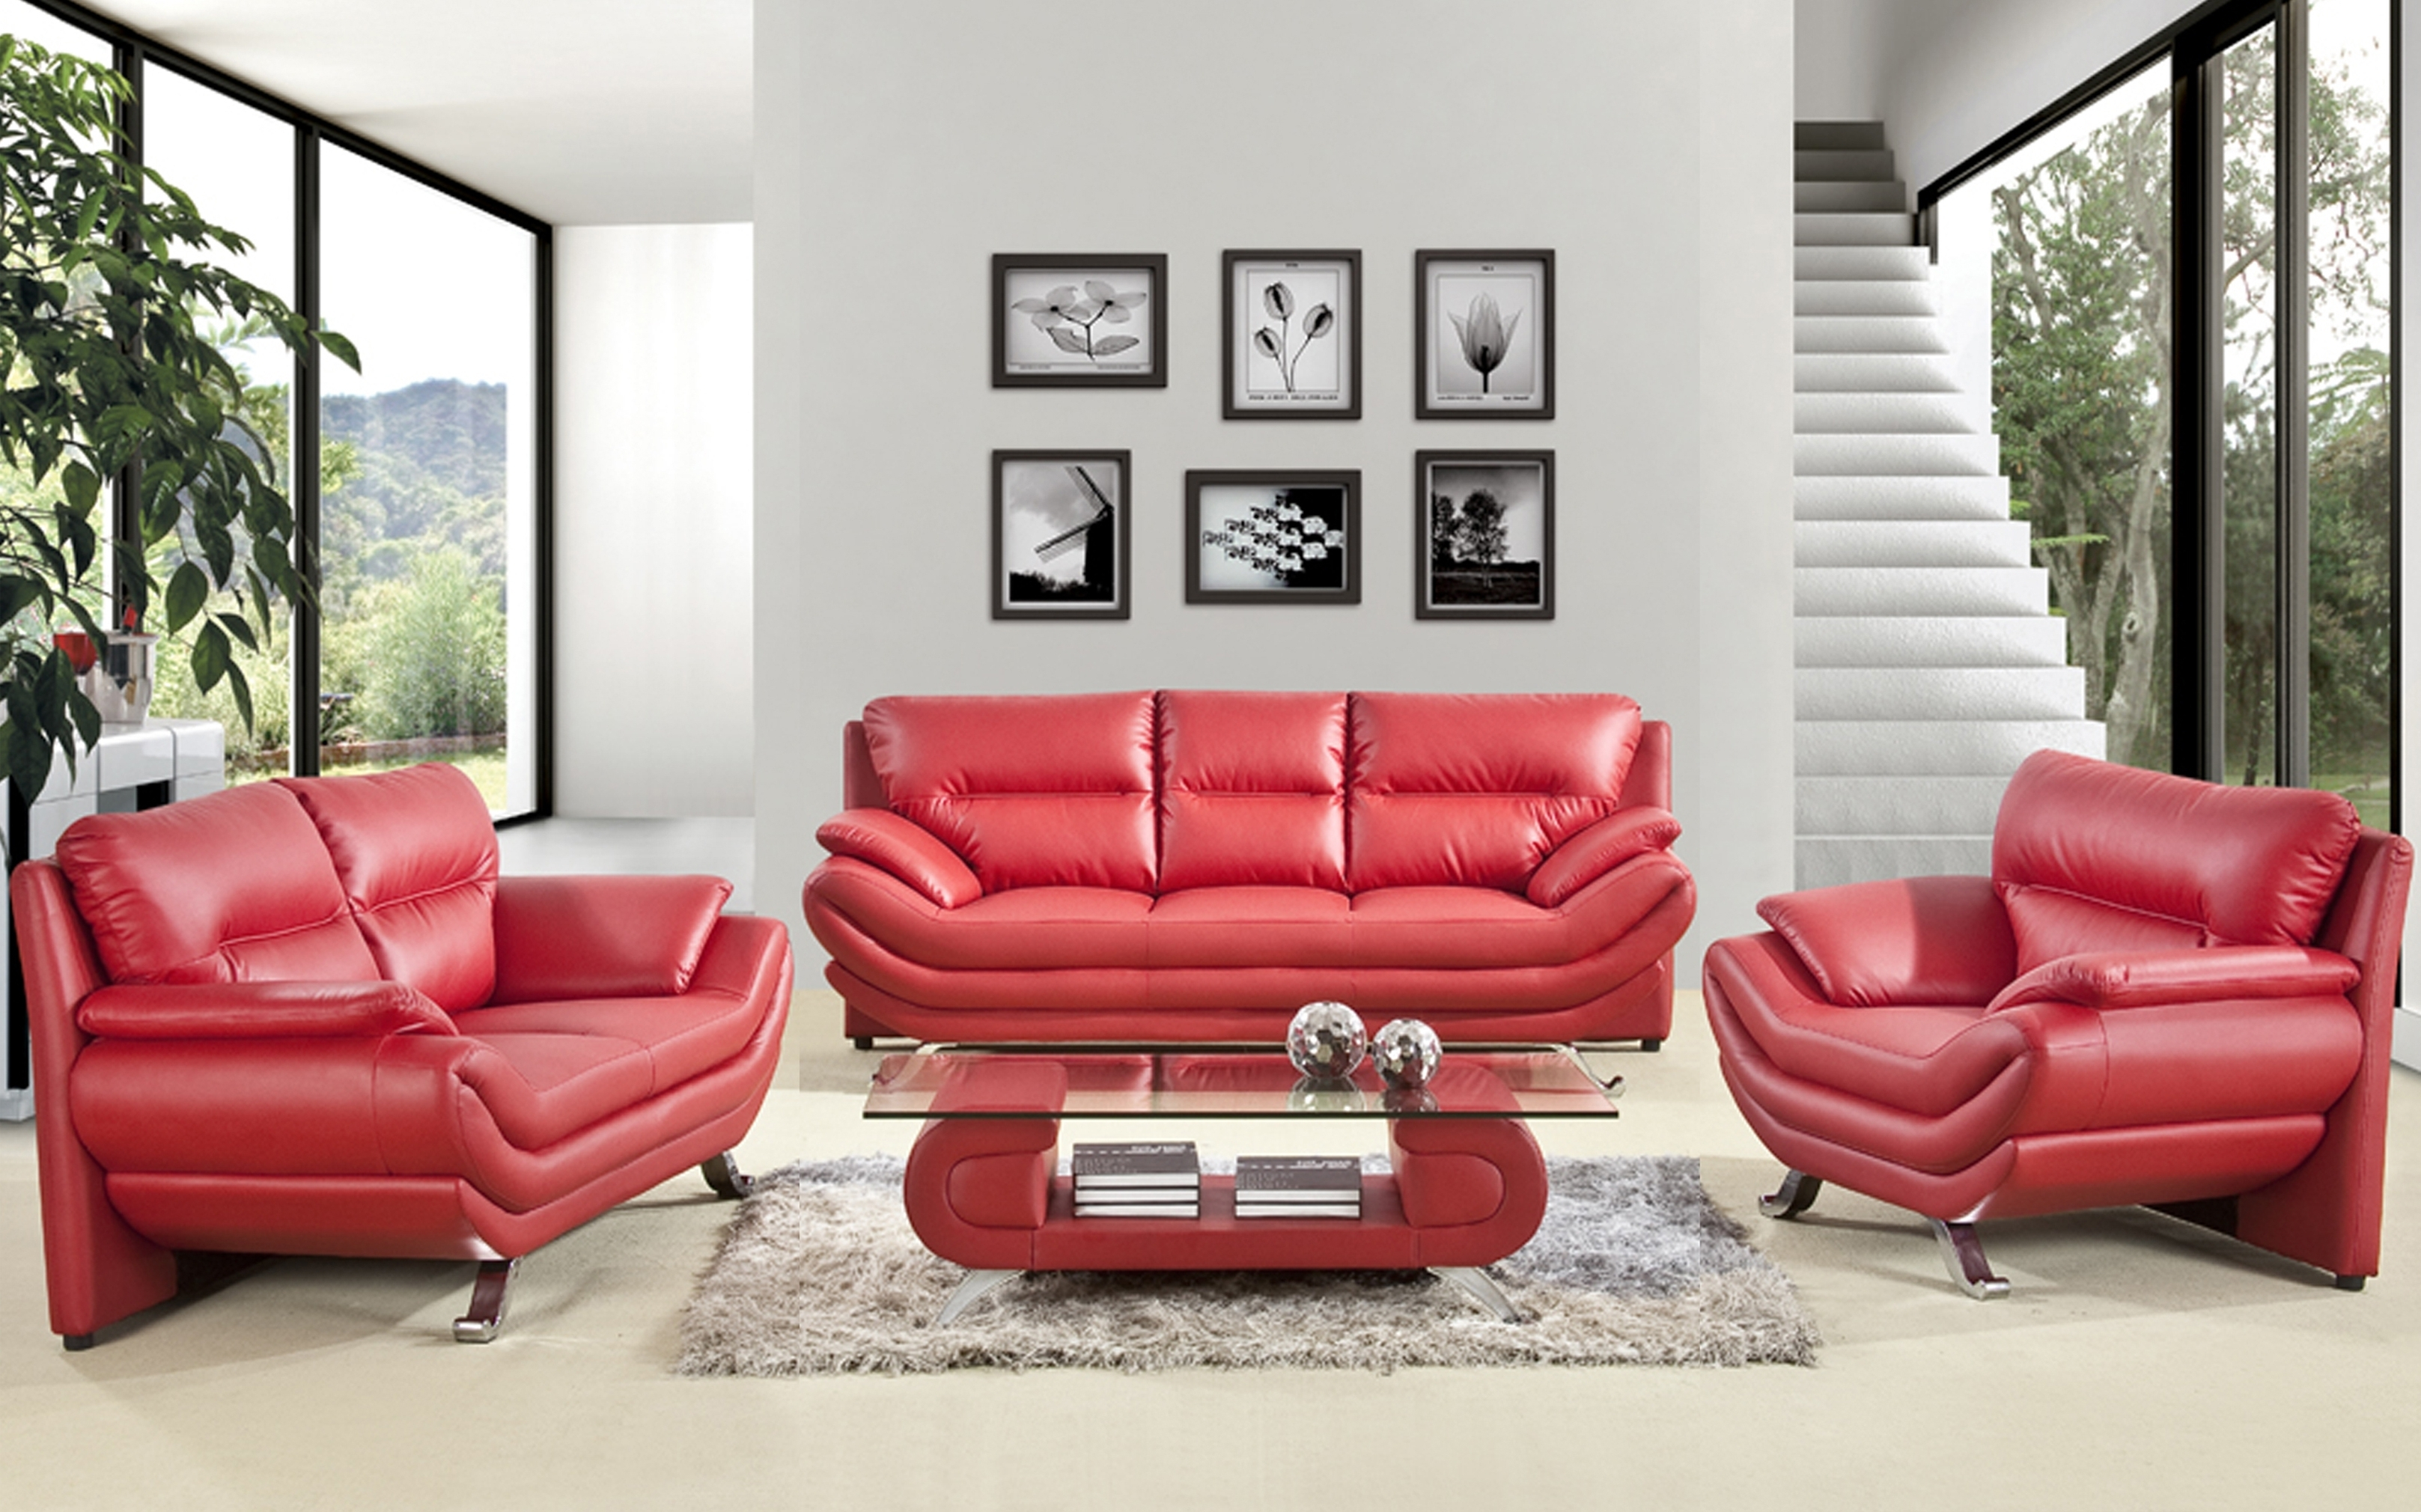 Current Red Leather Sofa Living Room Design • Living Room Design Within Red Leather Couches For Living Room (View 2 of 15)